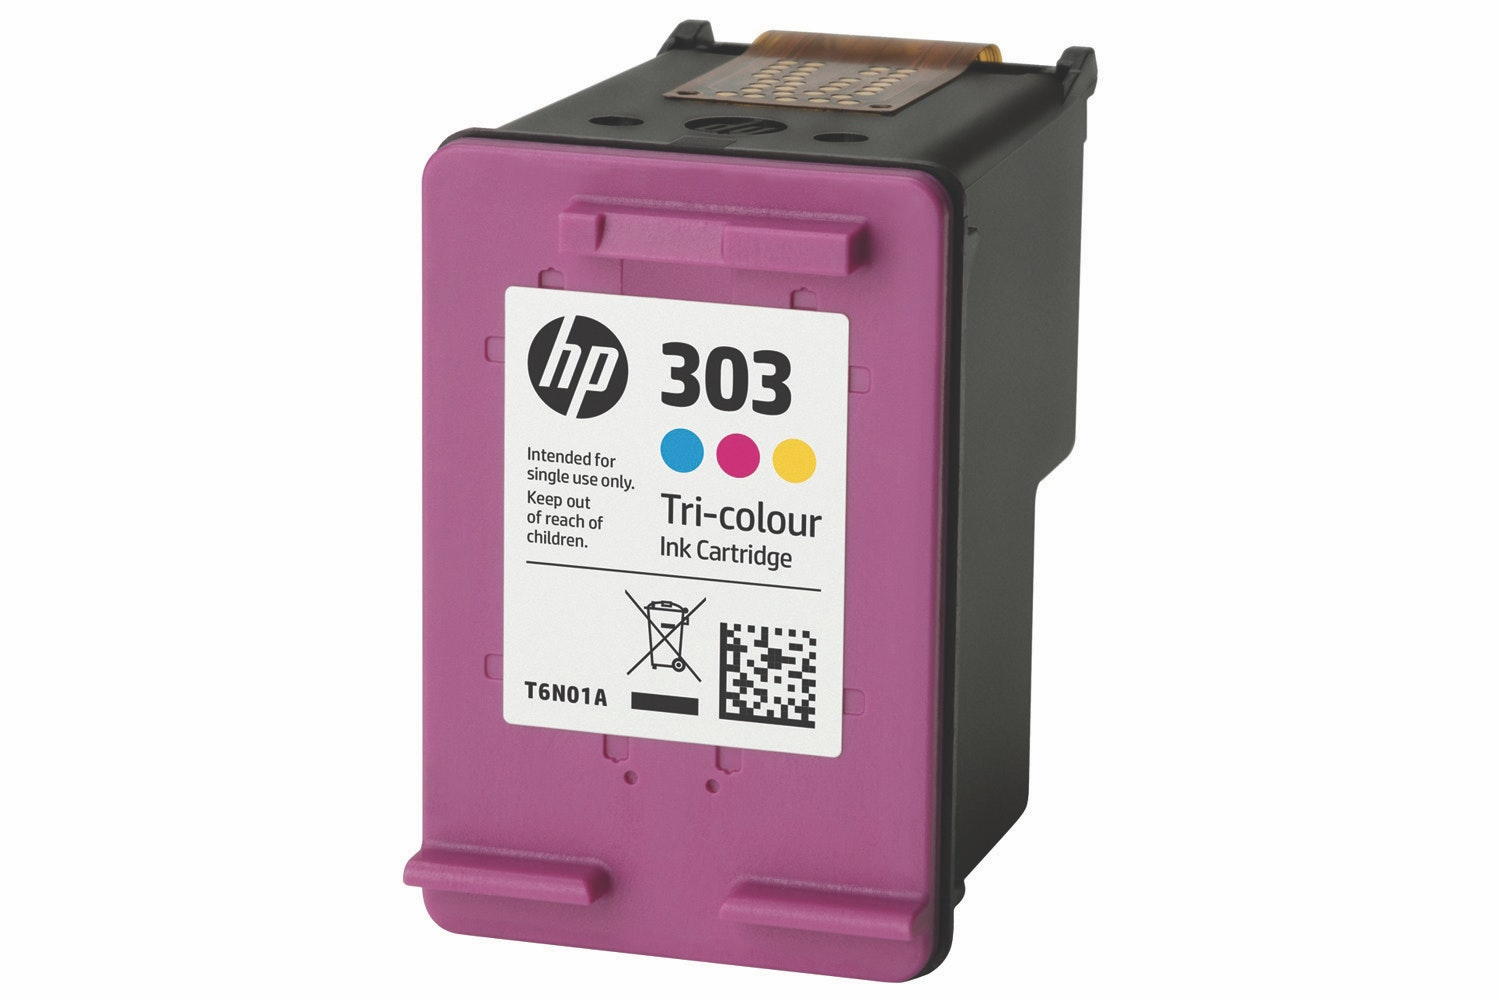 HP T6N01AE 303 Tri-color Ink